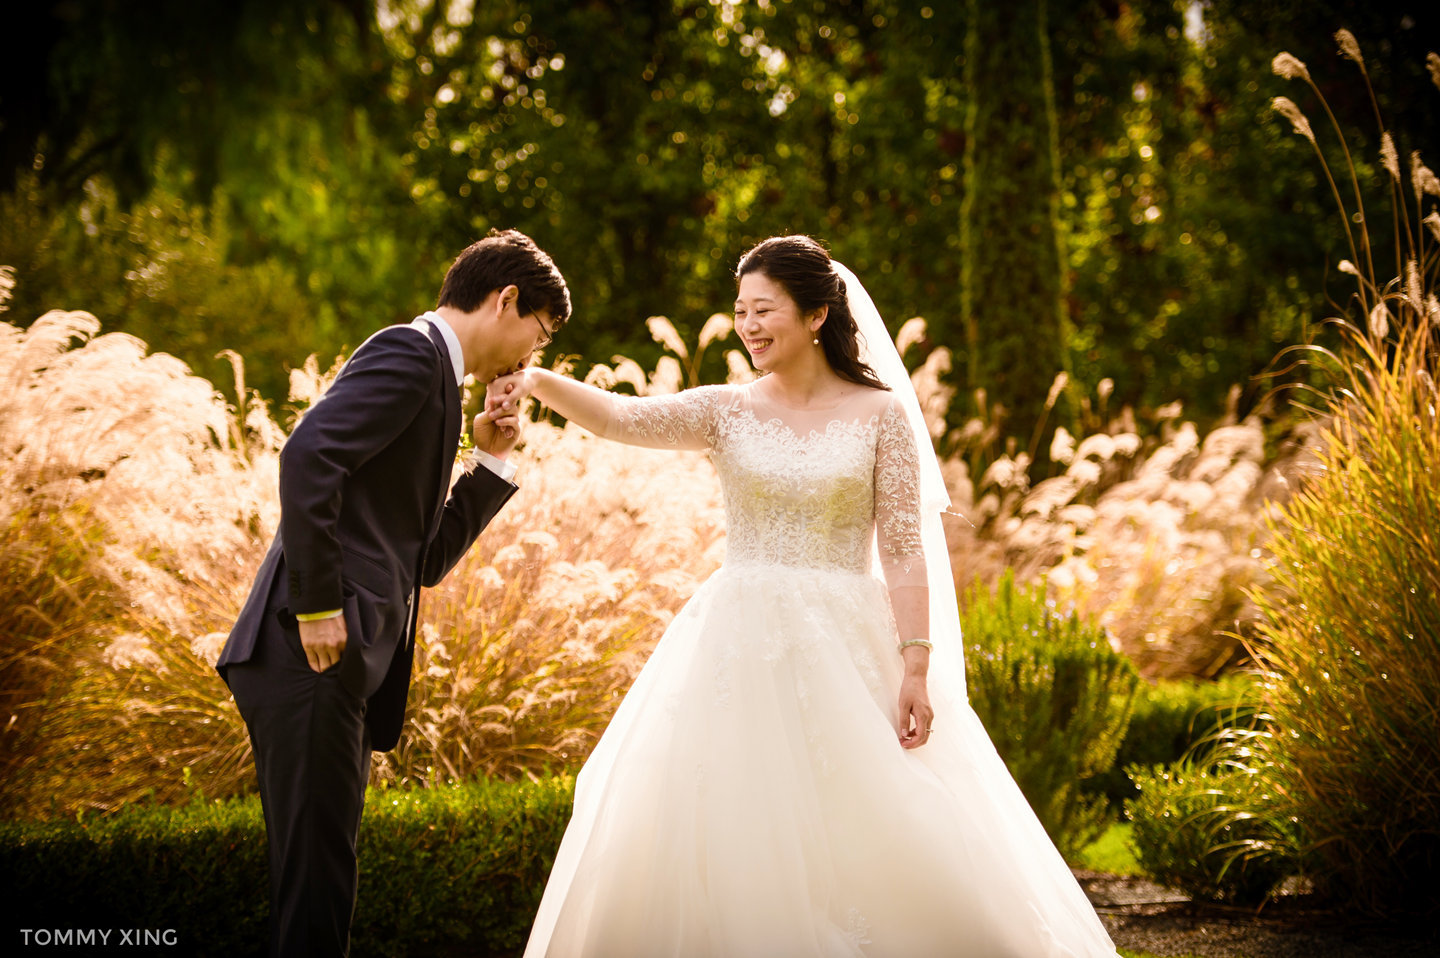 San Francisco Wedding Photography Valley Presbyterian Church WEDDING Tommy Xing Photography 洛杉矶旧金山婚礼婚纱照摄影师048.jpg